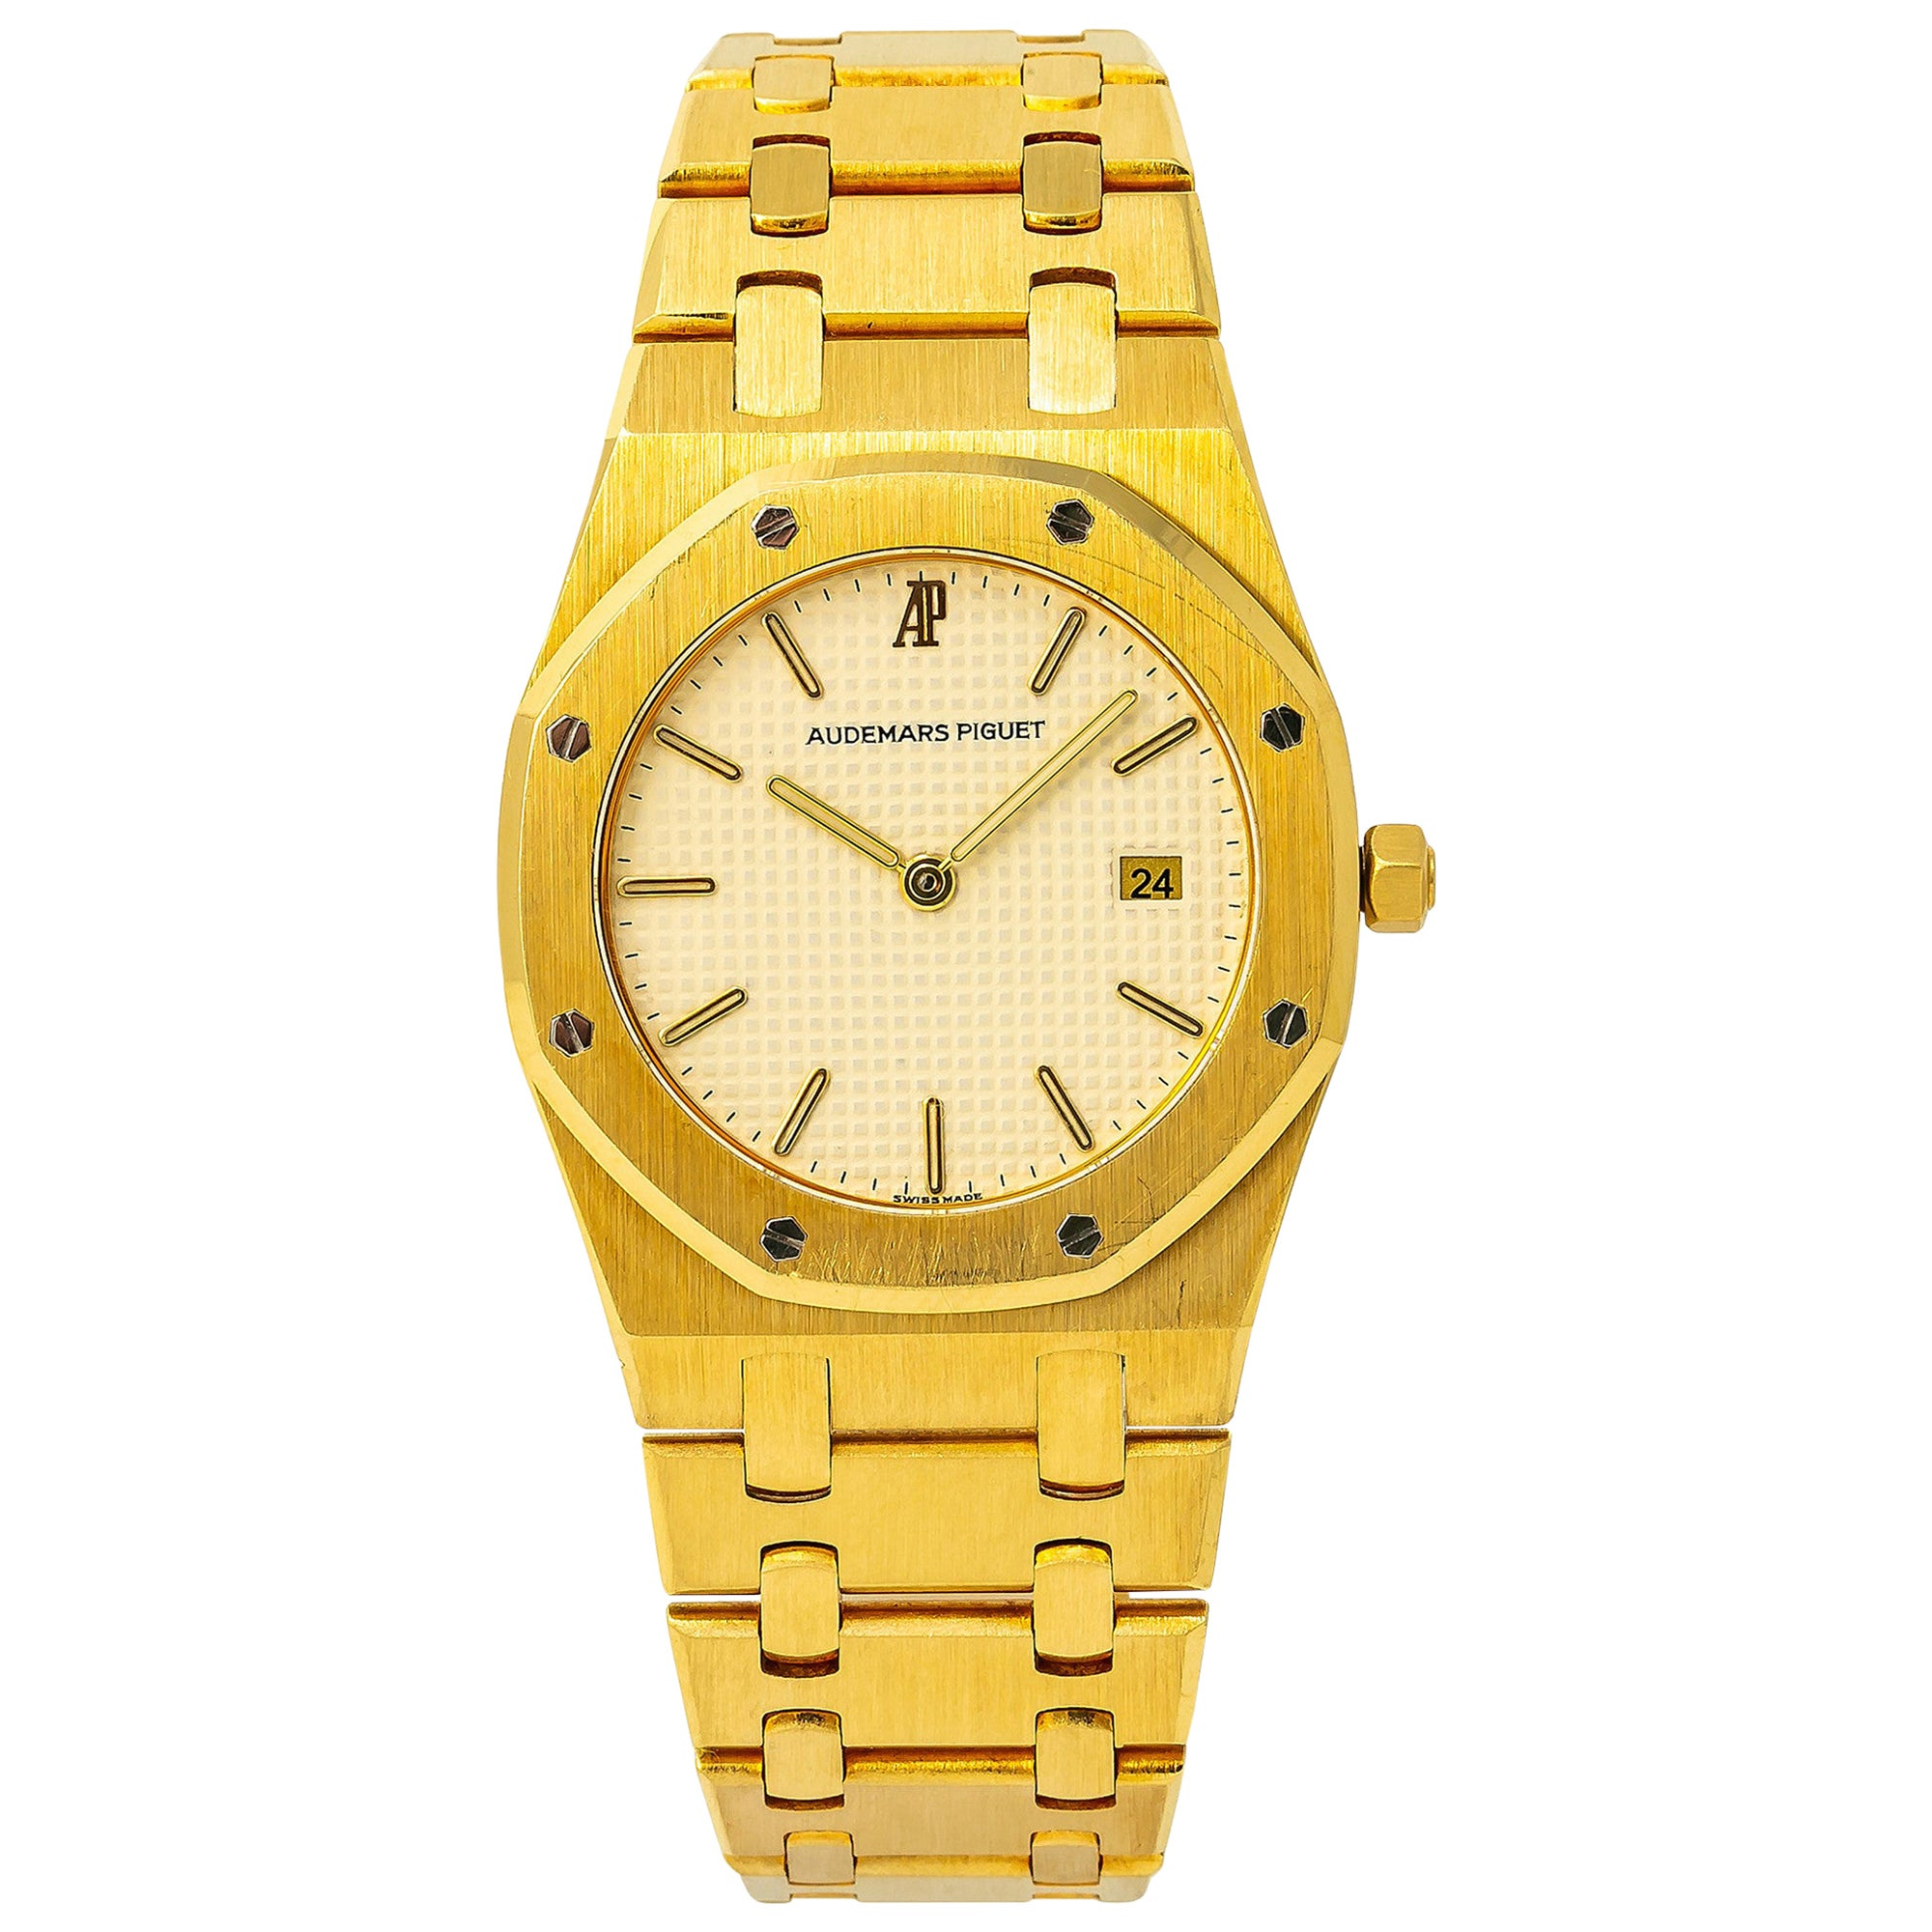 Audemars Piguet Royal Oak No-Ref#, Off-White Dial, Certified and